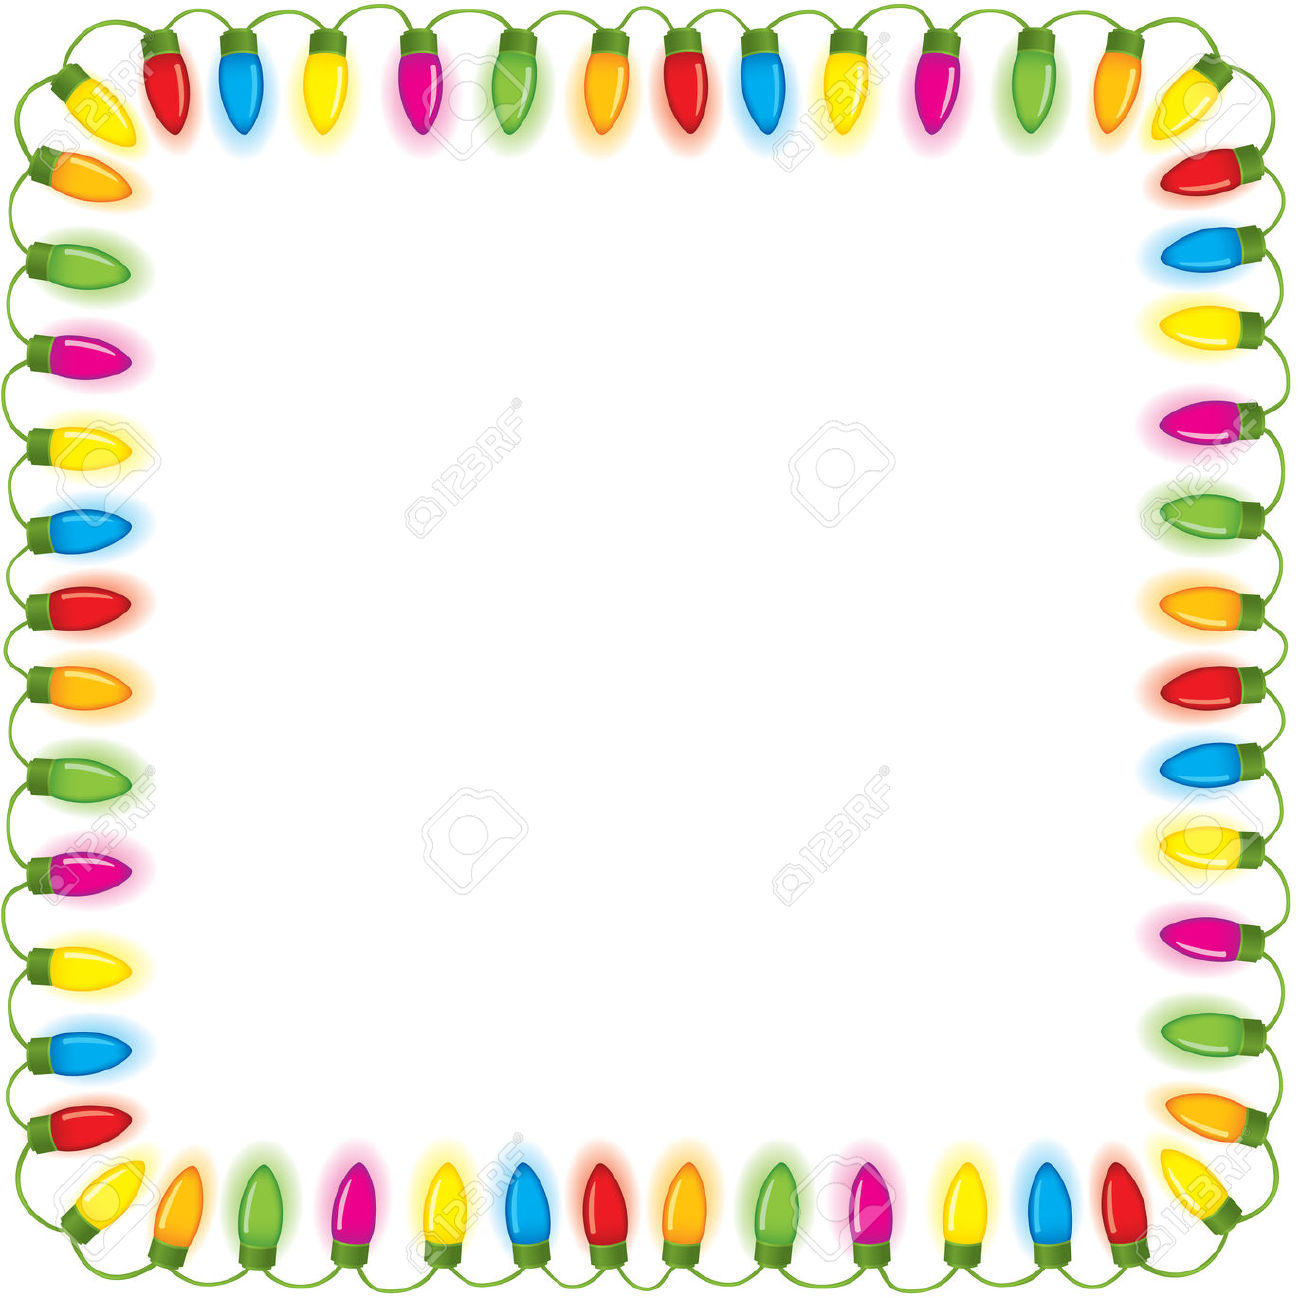 Festive Christmas Lights Free Cliparts Vectors And Stock